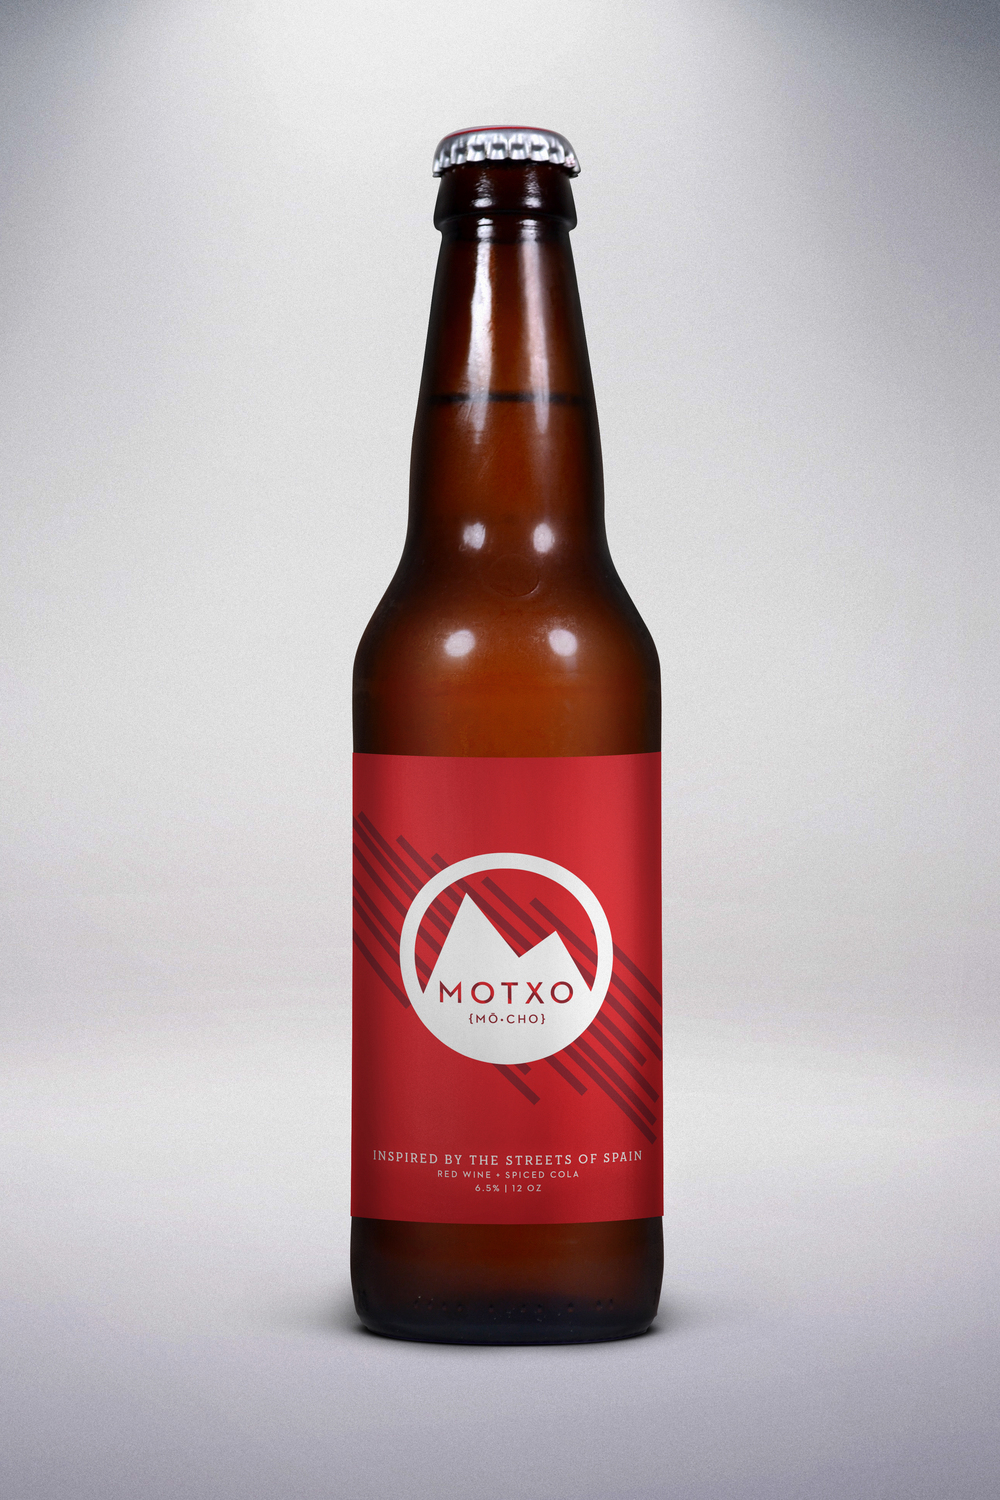 Motxo Bottle Mockup on white.jpg